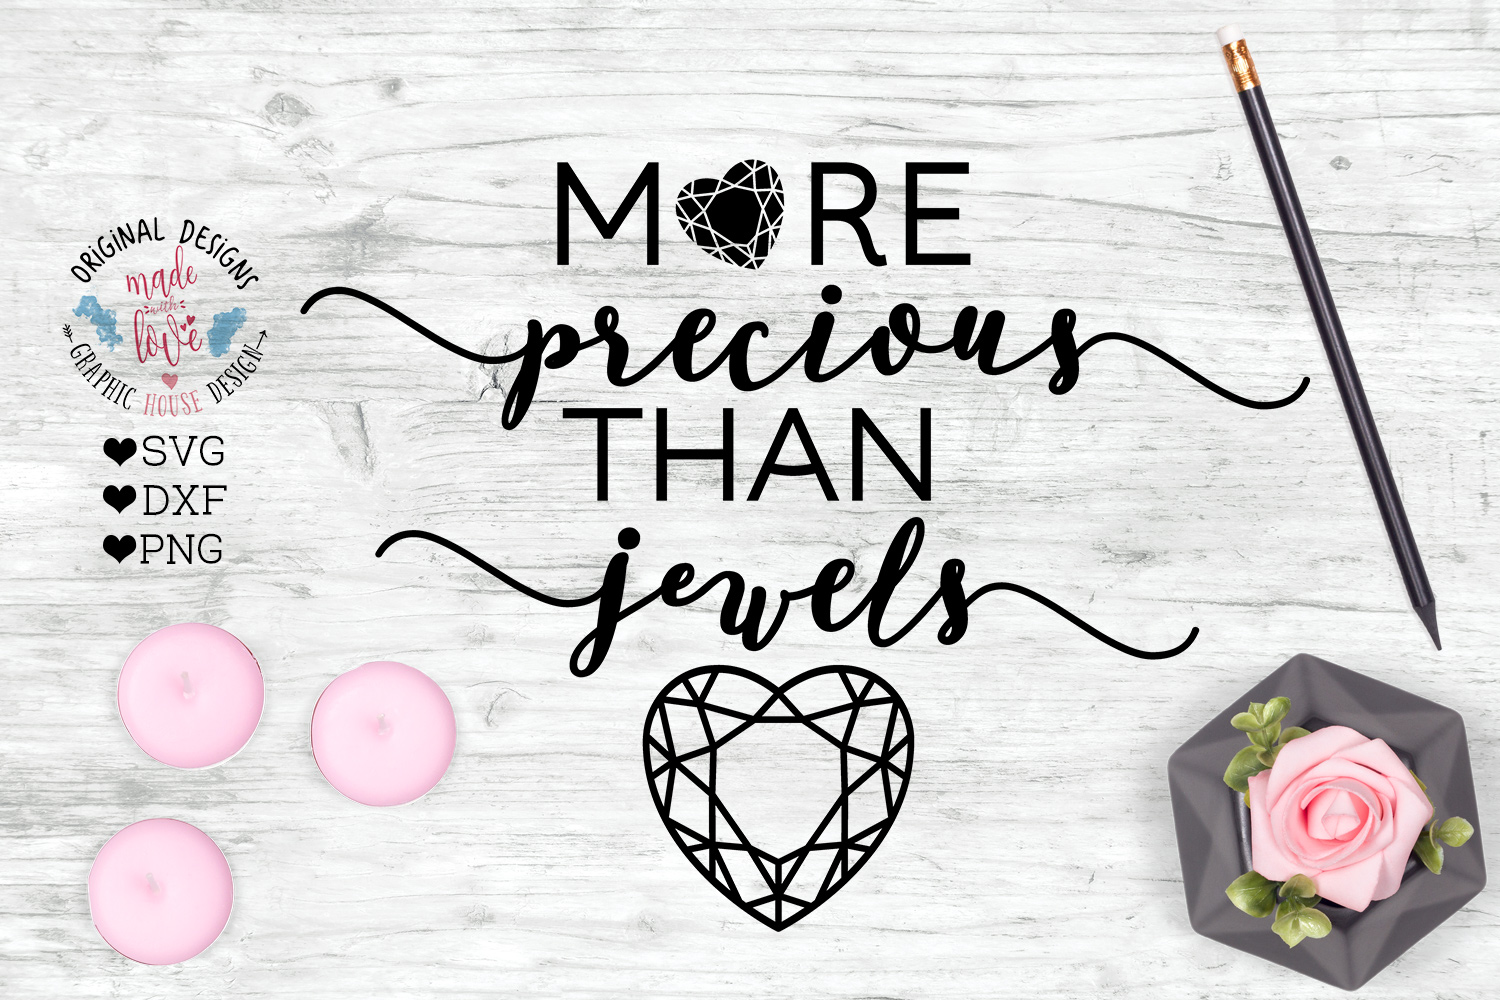 More Precious than Jewels - Bible Verse Cut File example image 1